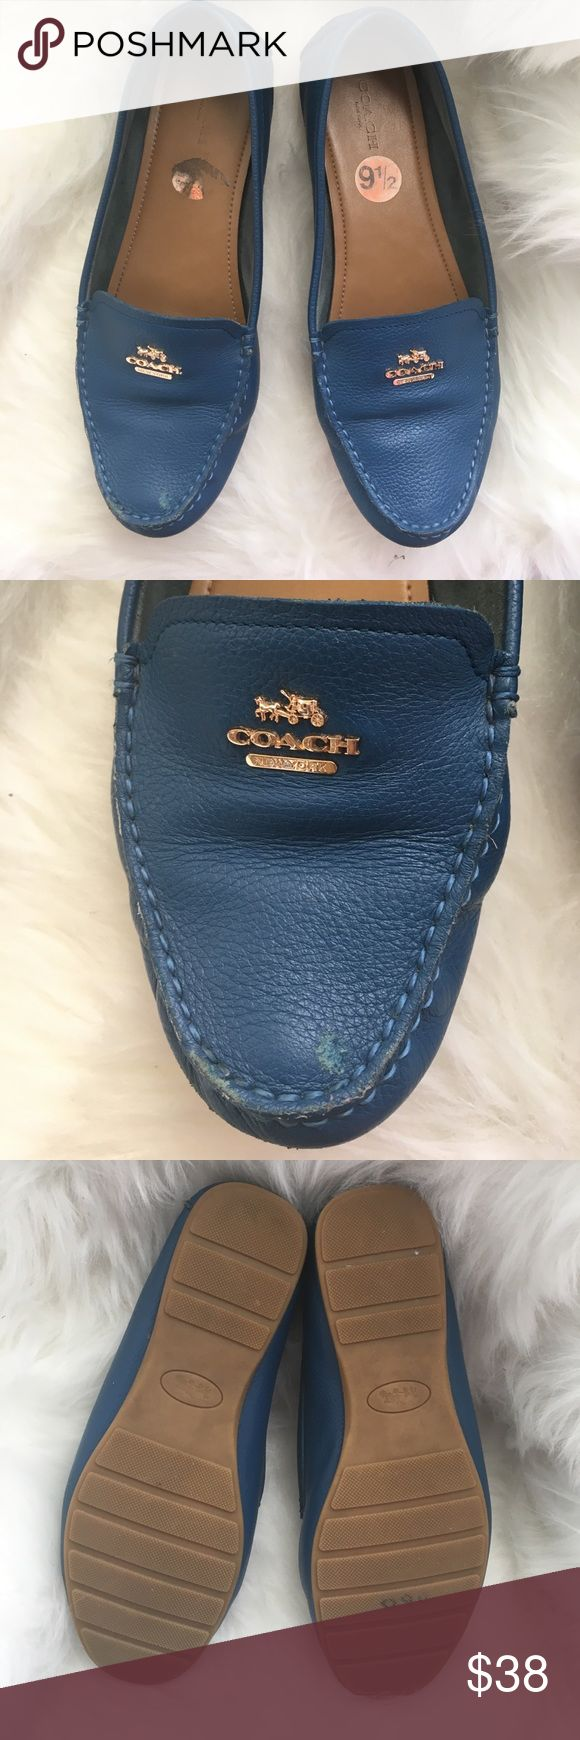 Coach Flats Size 9 These are very comfortable size 39 EUR and 9 US. There's a small nick on the front of one shoe shown in the pictures. Still have lots of Life in them Coach Shoes Flats & Loafers